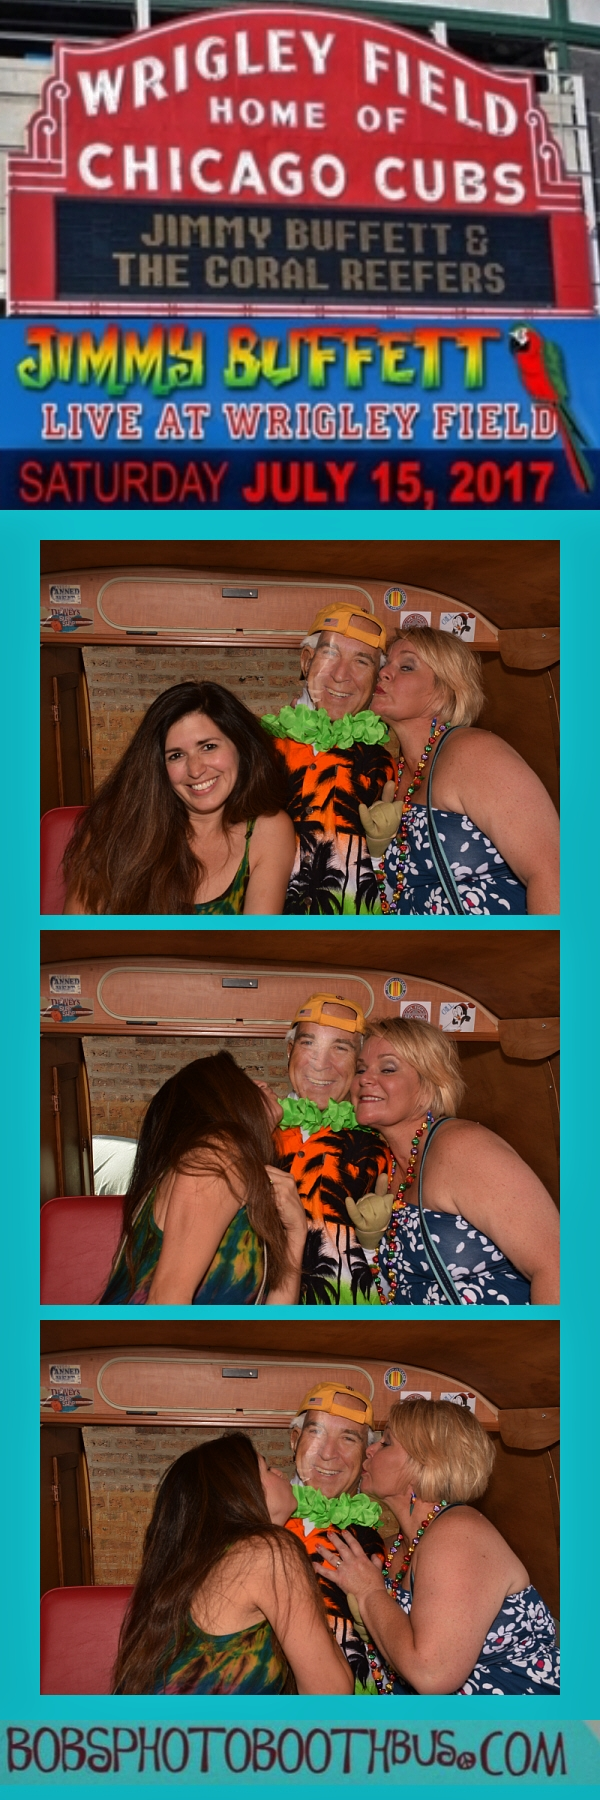 Jimmy Buffett final photo strip graphic_32.jpg